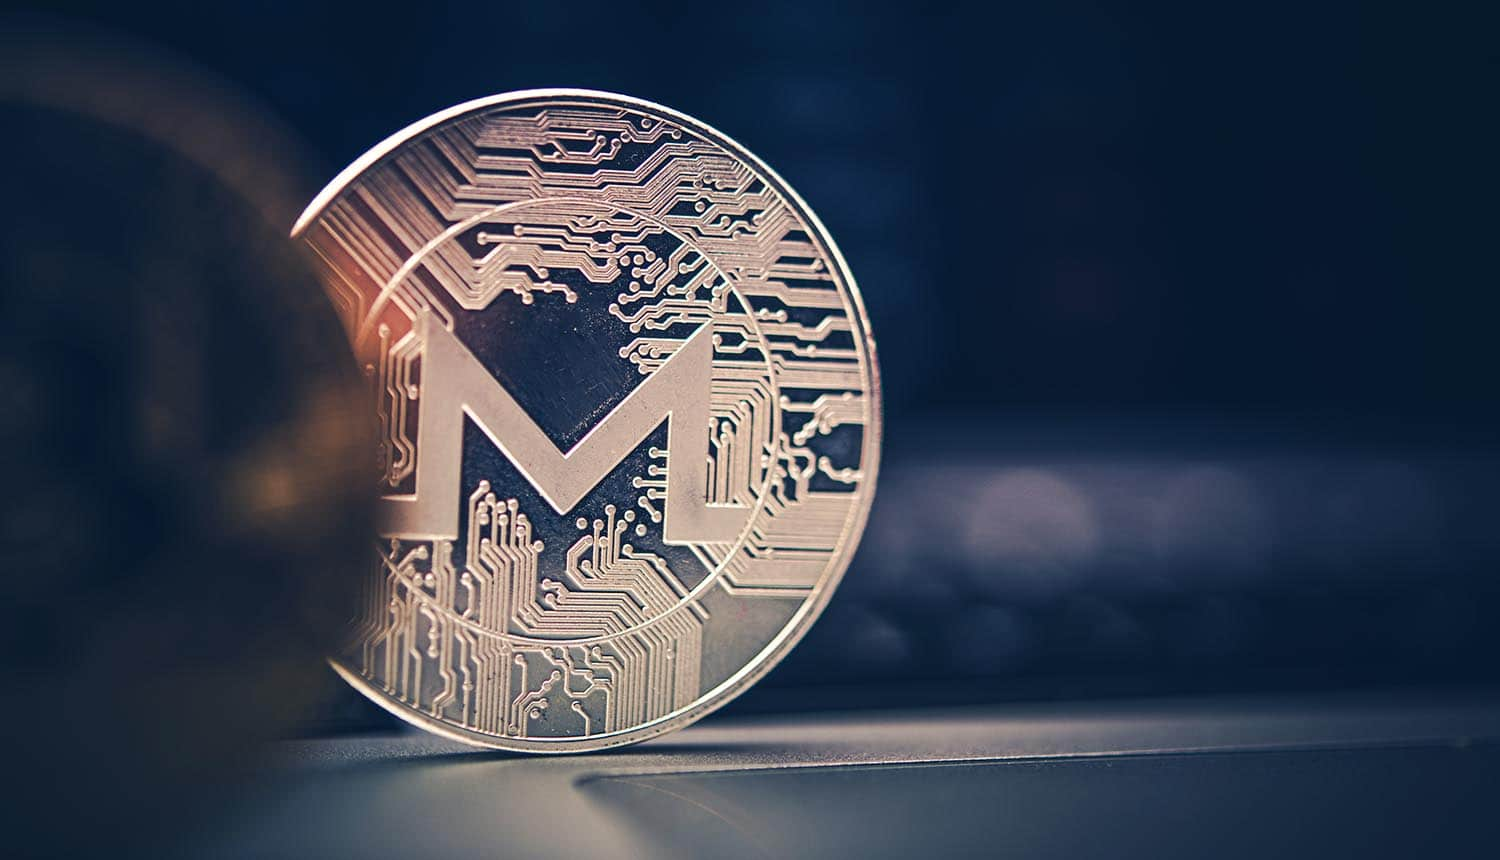 Close up Monero cryptocurrency coin showing tracking of cryptocurrency transactions